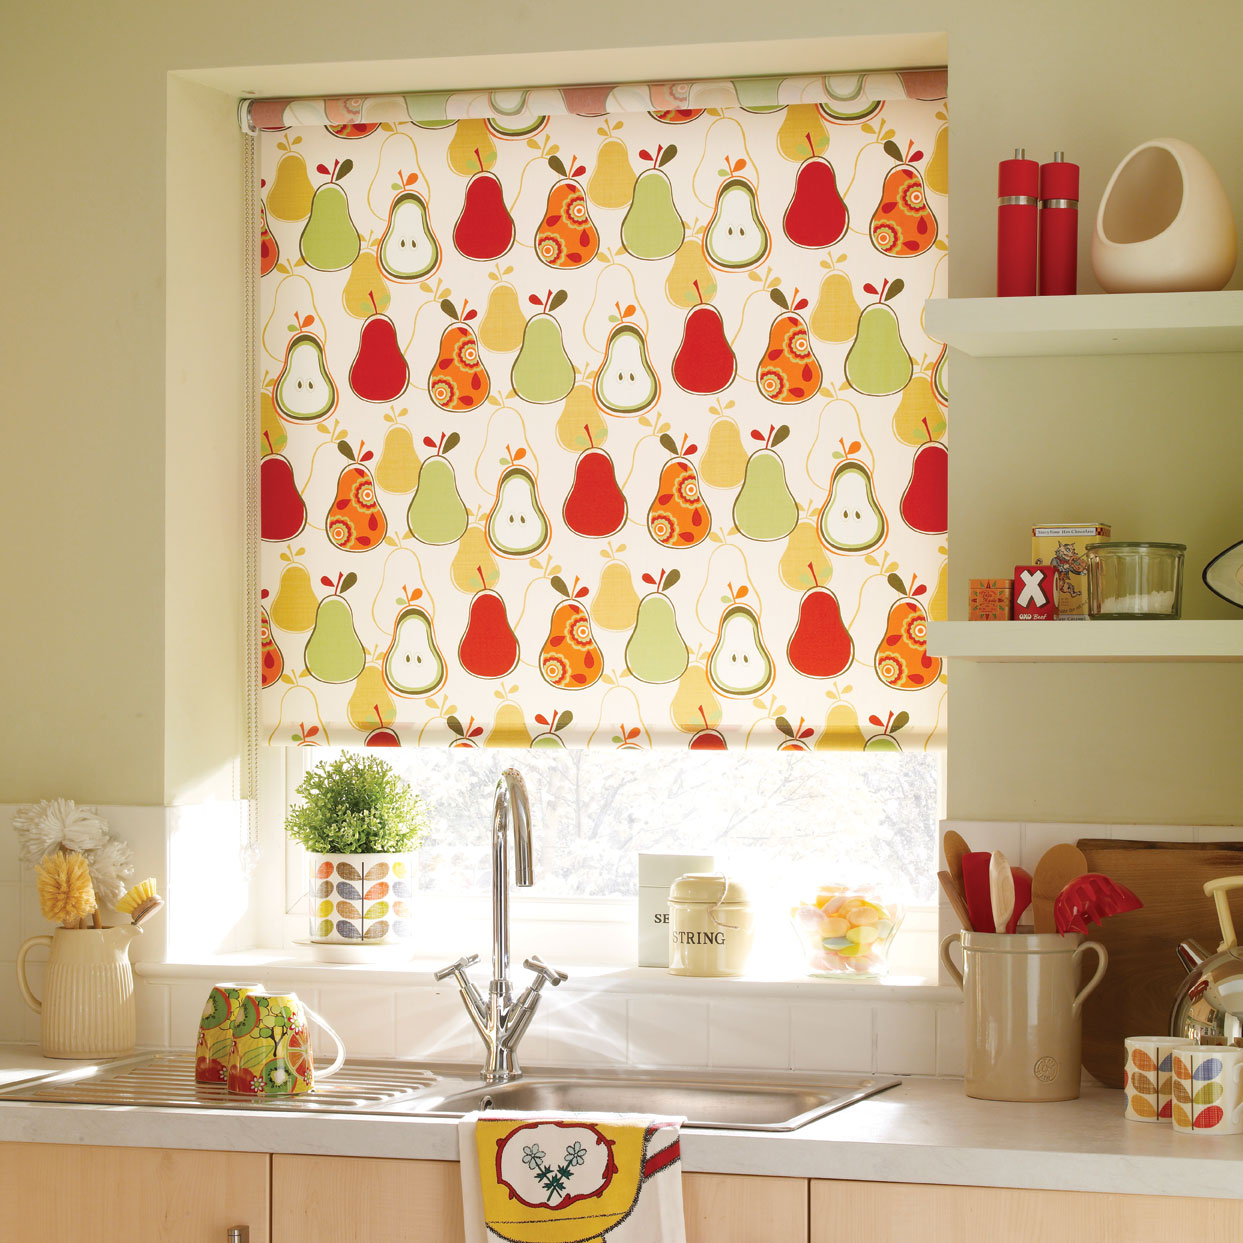 Kitchen Blinds And Shades: Kitchen Blinds- Roller, Venetian & More!